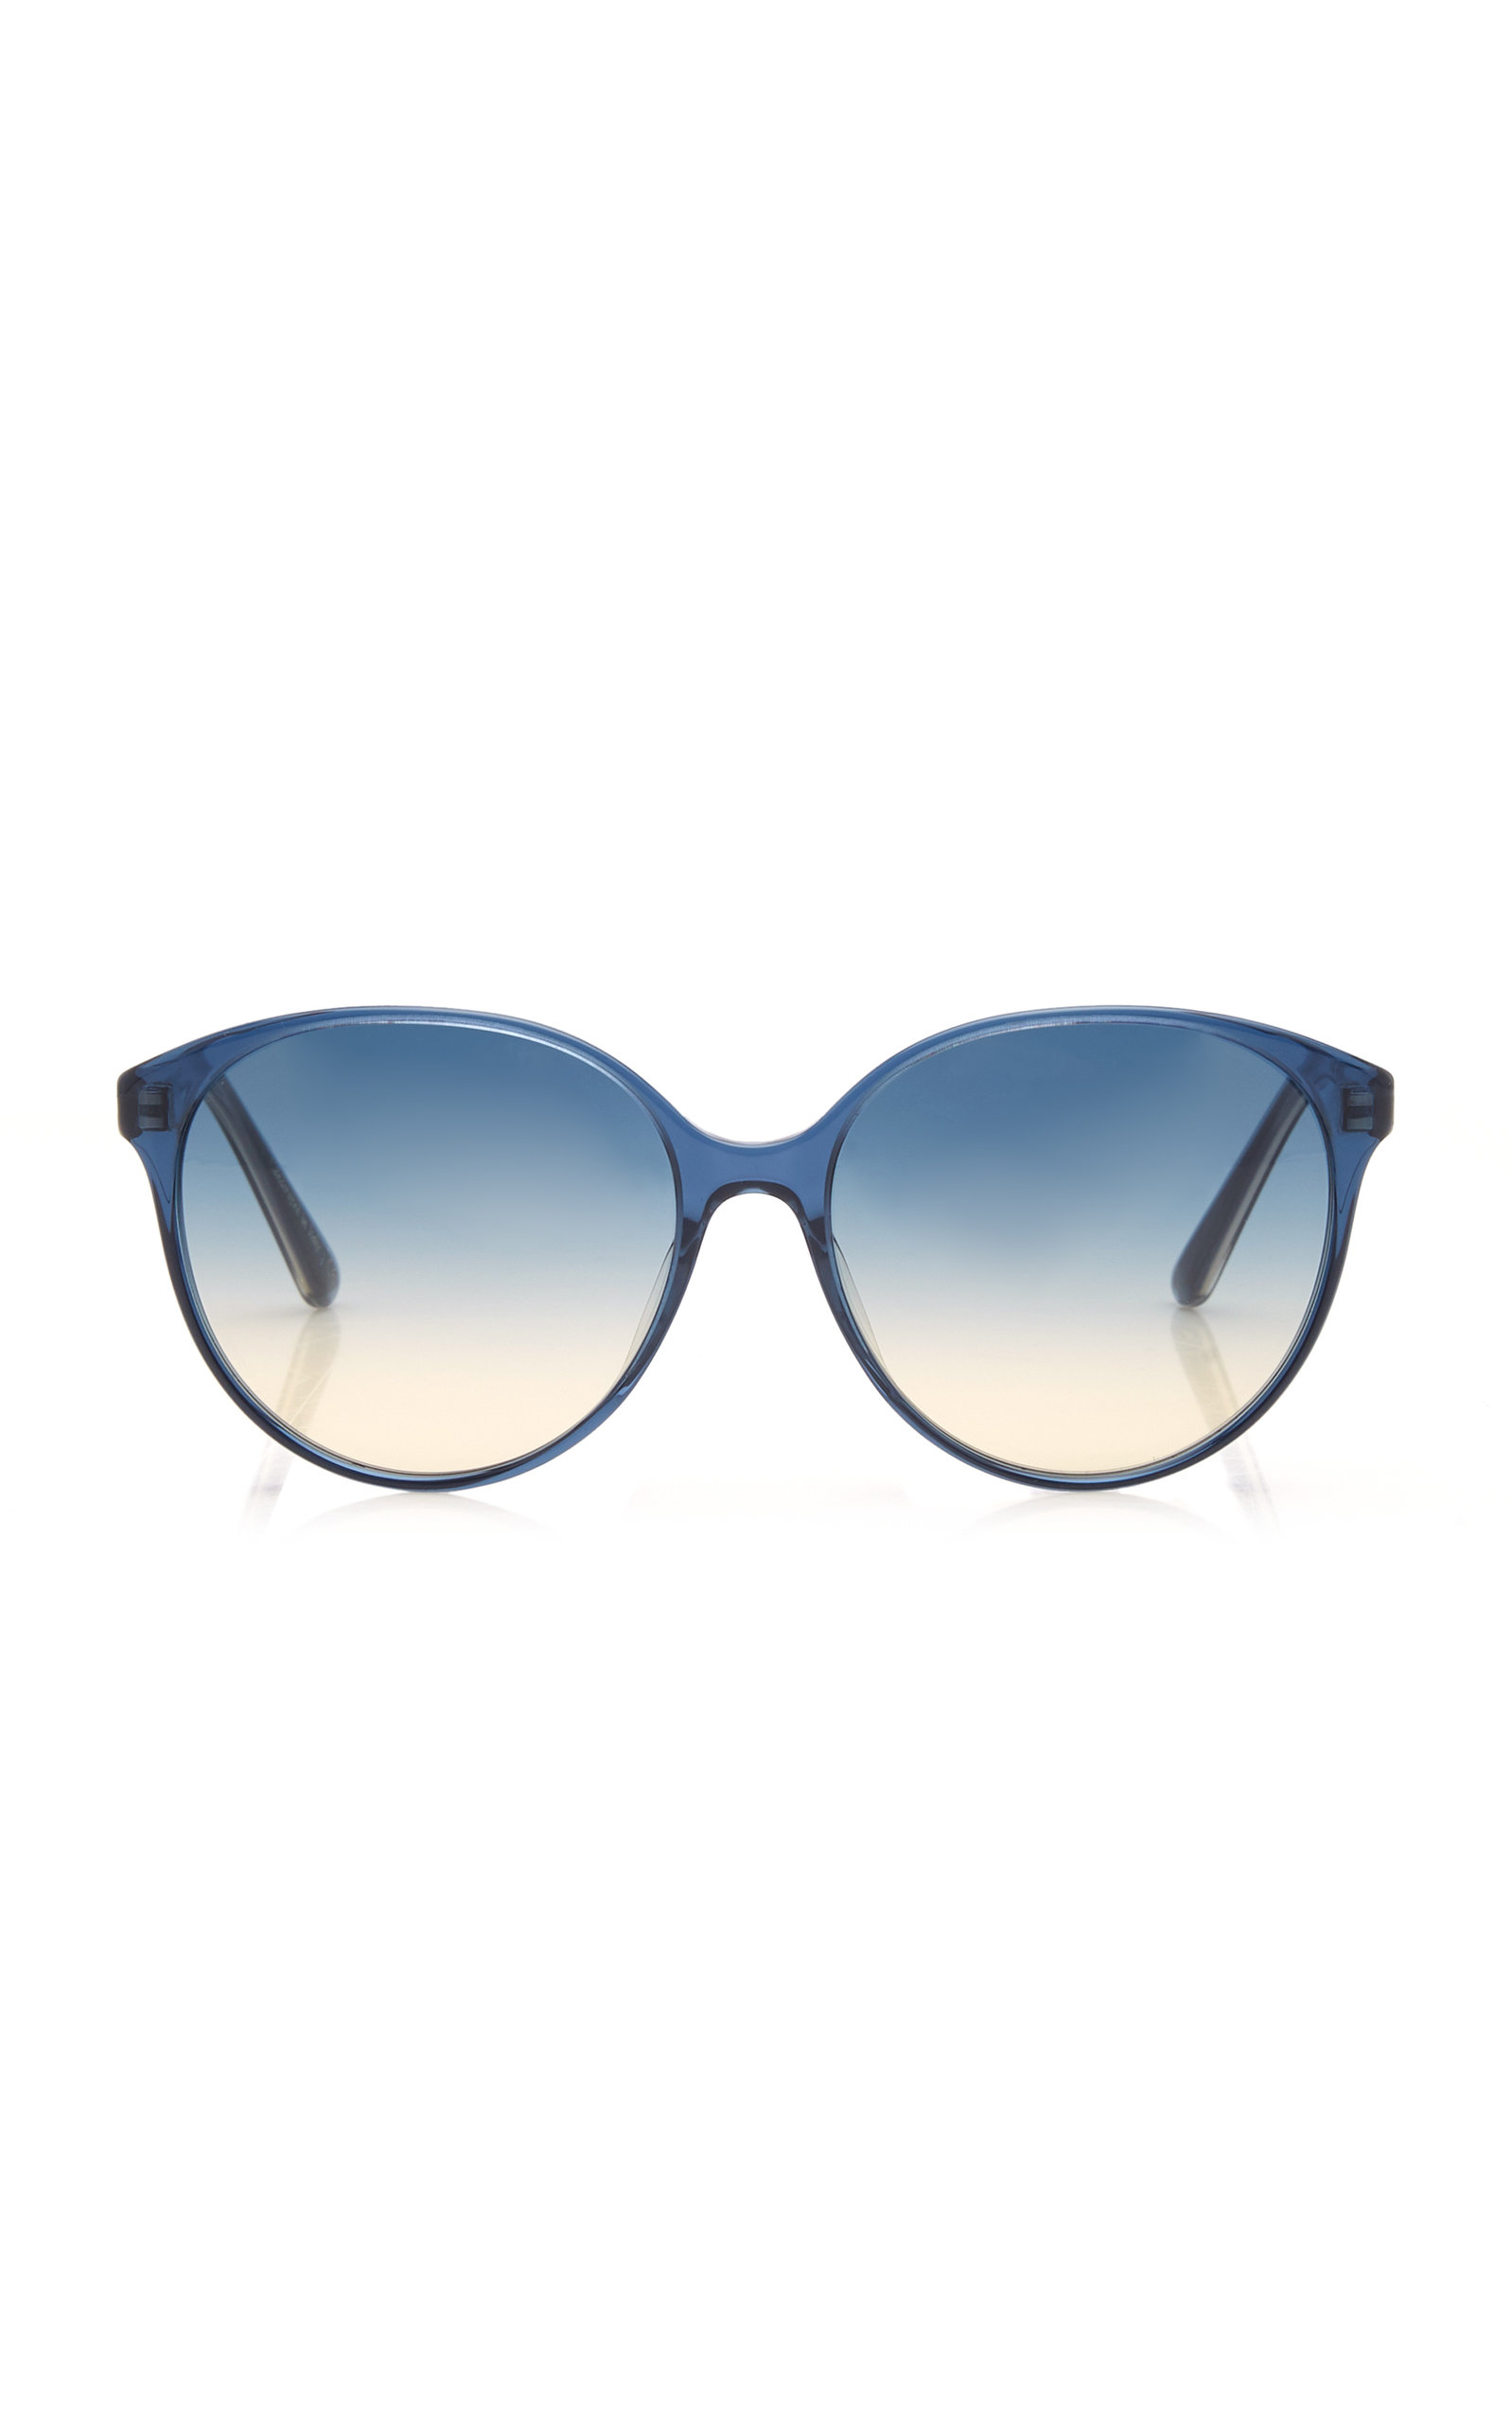 Brook Tree Oversized Acetate Sunglasses by Oliver Peoples The Row